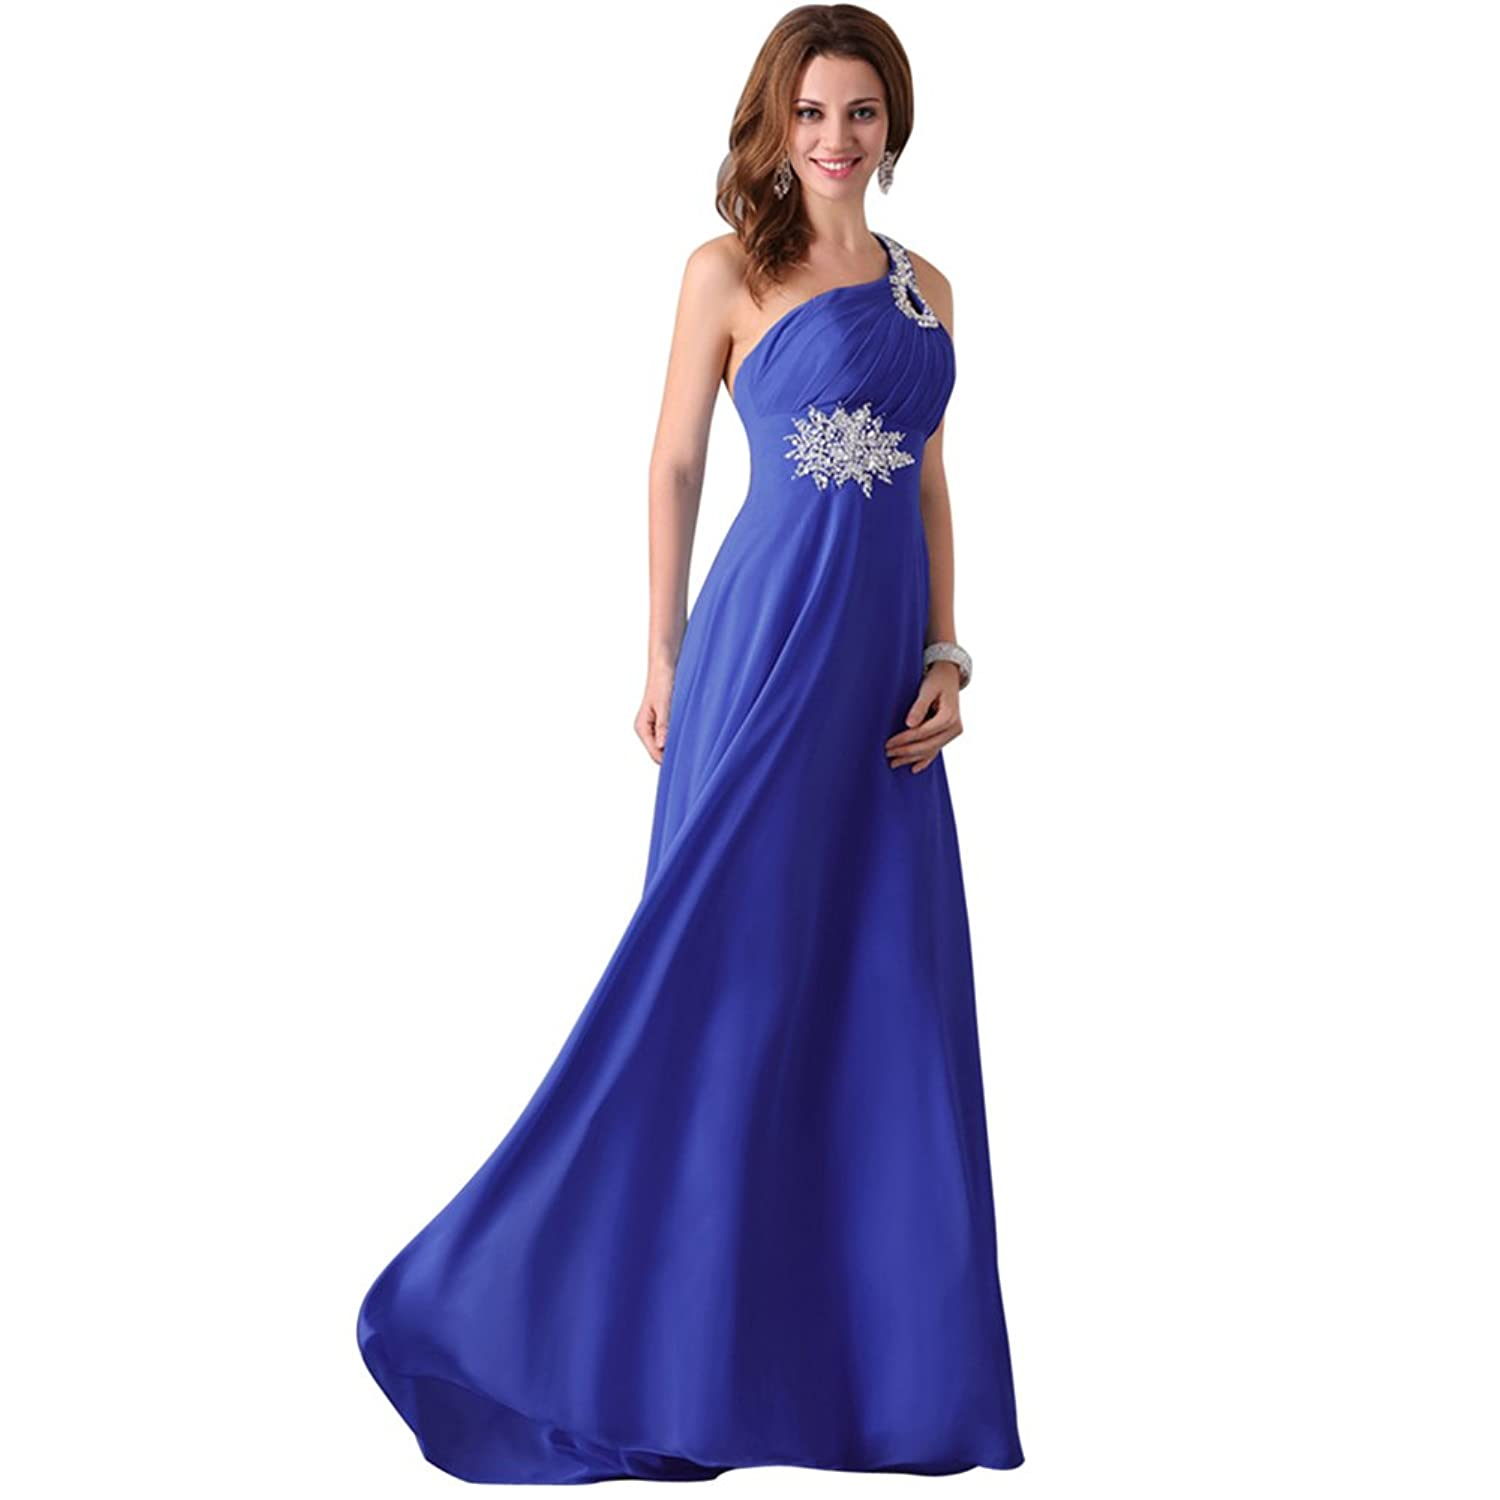 Vimans? Women's 2016 Long One Shoulder Beaded Bridesmaid Evening Dresses